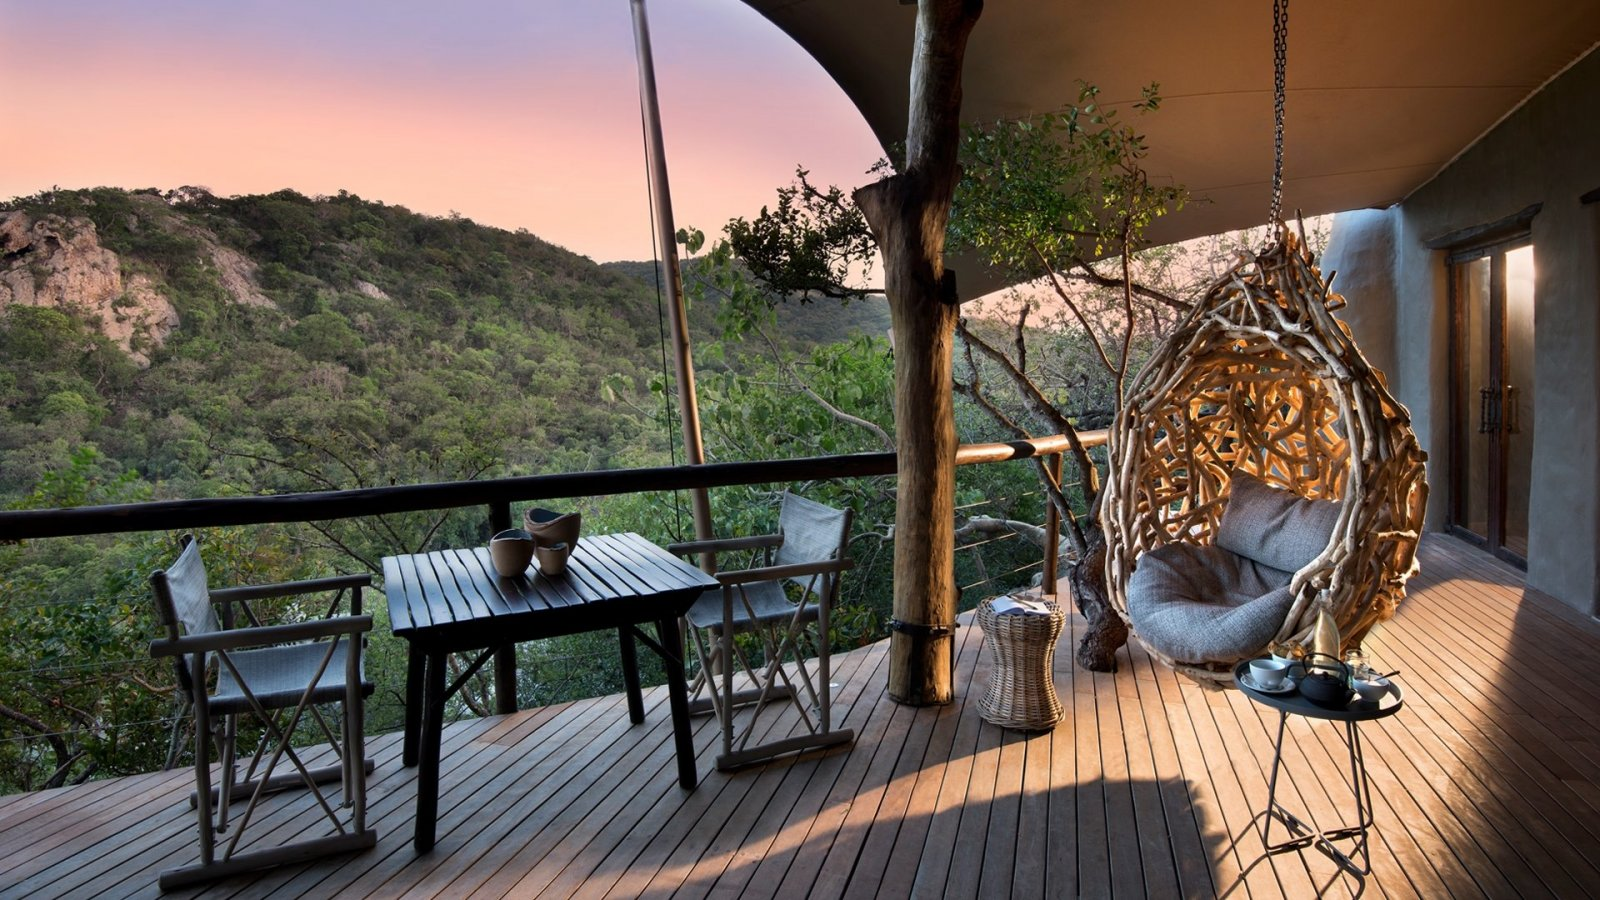 phinda-rock-lodge-deck-views-dining-luxury-safari-south-africa.jpg